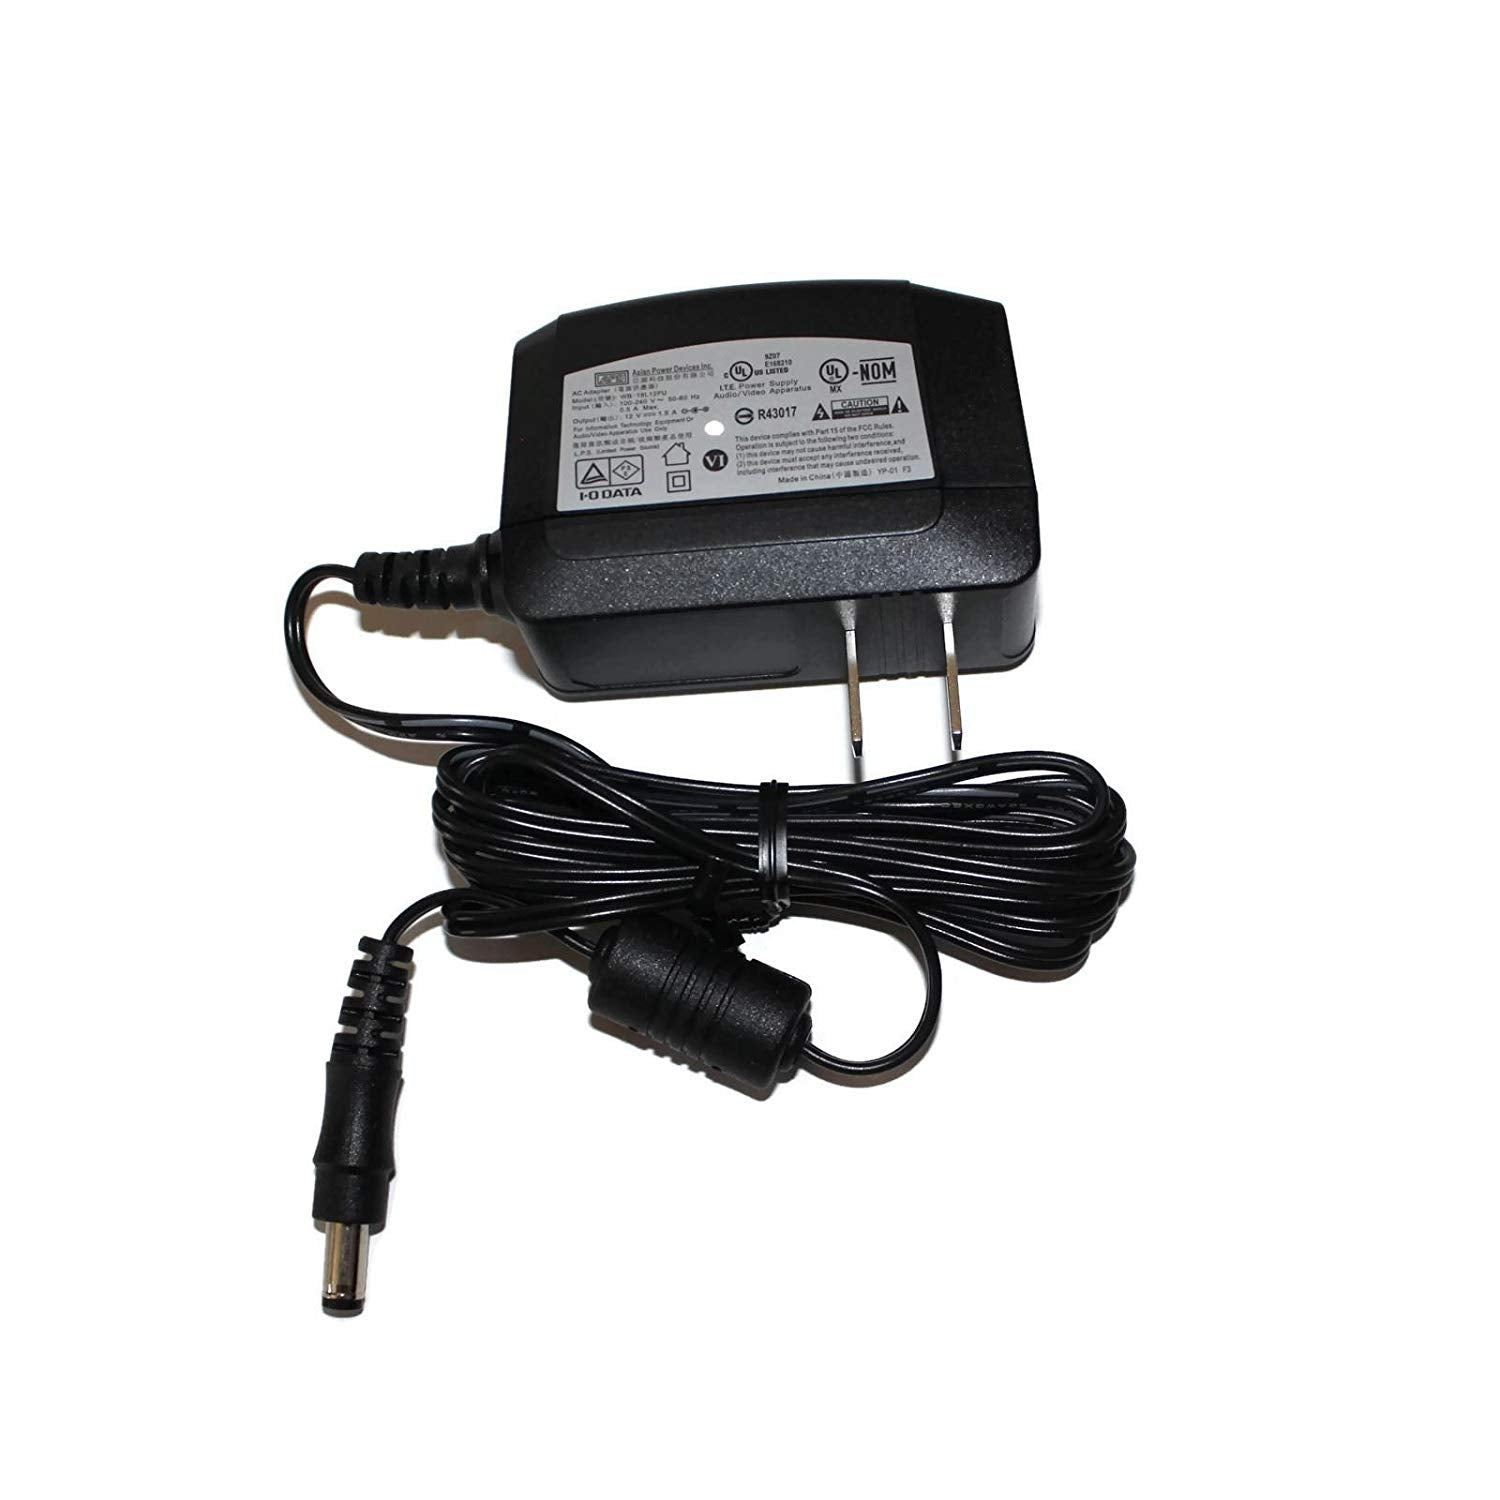 APD AC Adapter 12V 1.5A 120-240V 50-60Hz for WD / Seagate HDD - WB-18L12FU